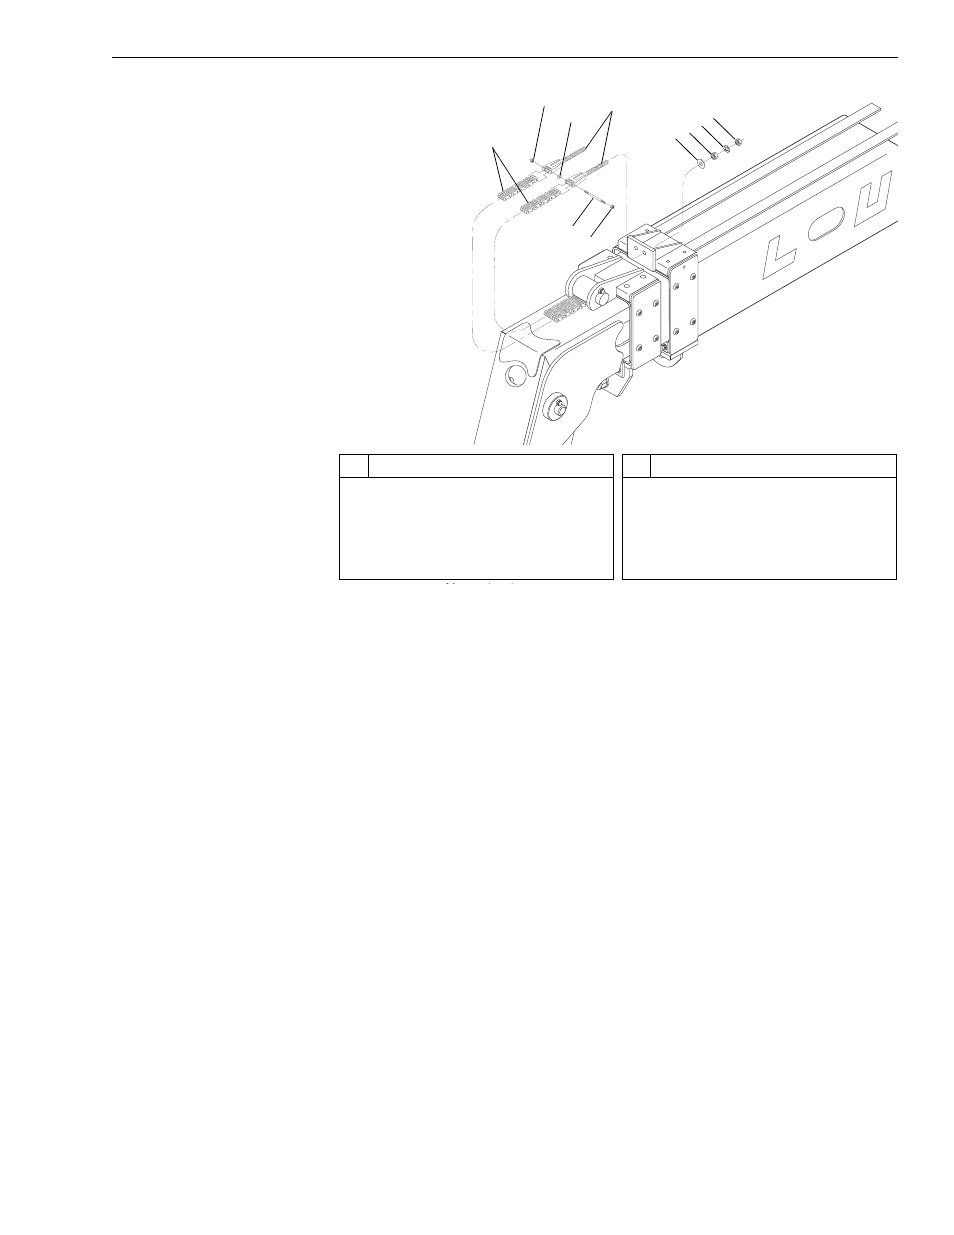 Lull 6K Service Manual User Manual | Page 349 / 636 | Also for: 844C  Service Manual, 8K Service Manual, 1044C Service Manual, 10K Service Manual,  ...